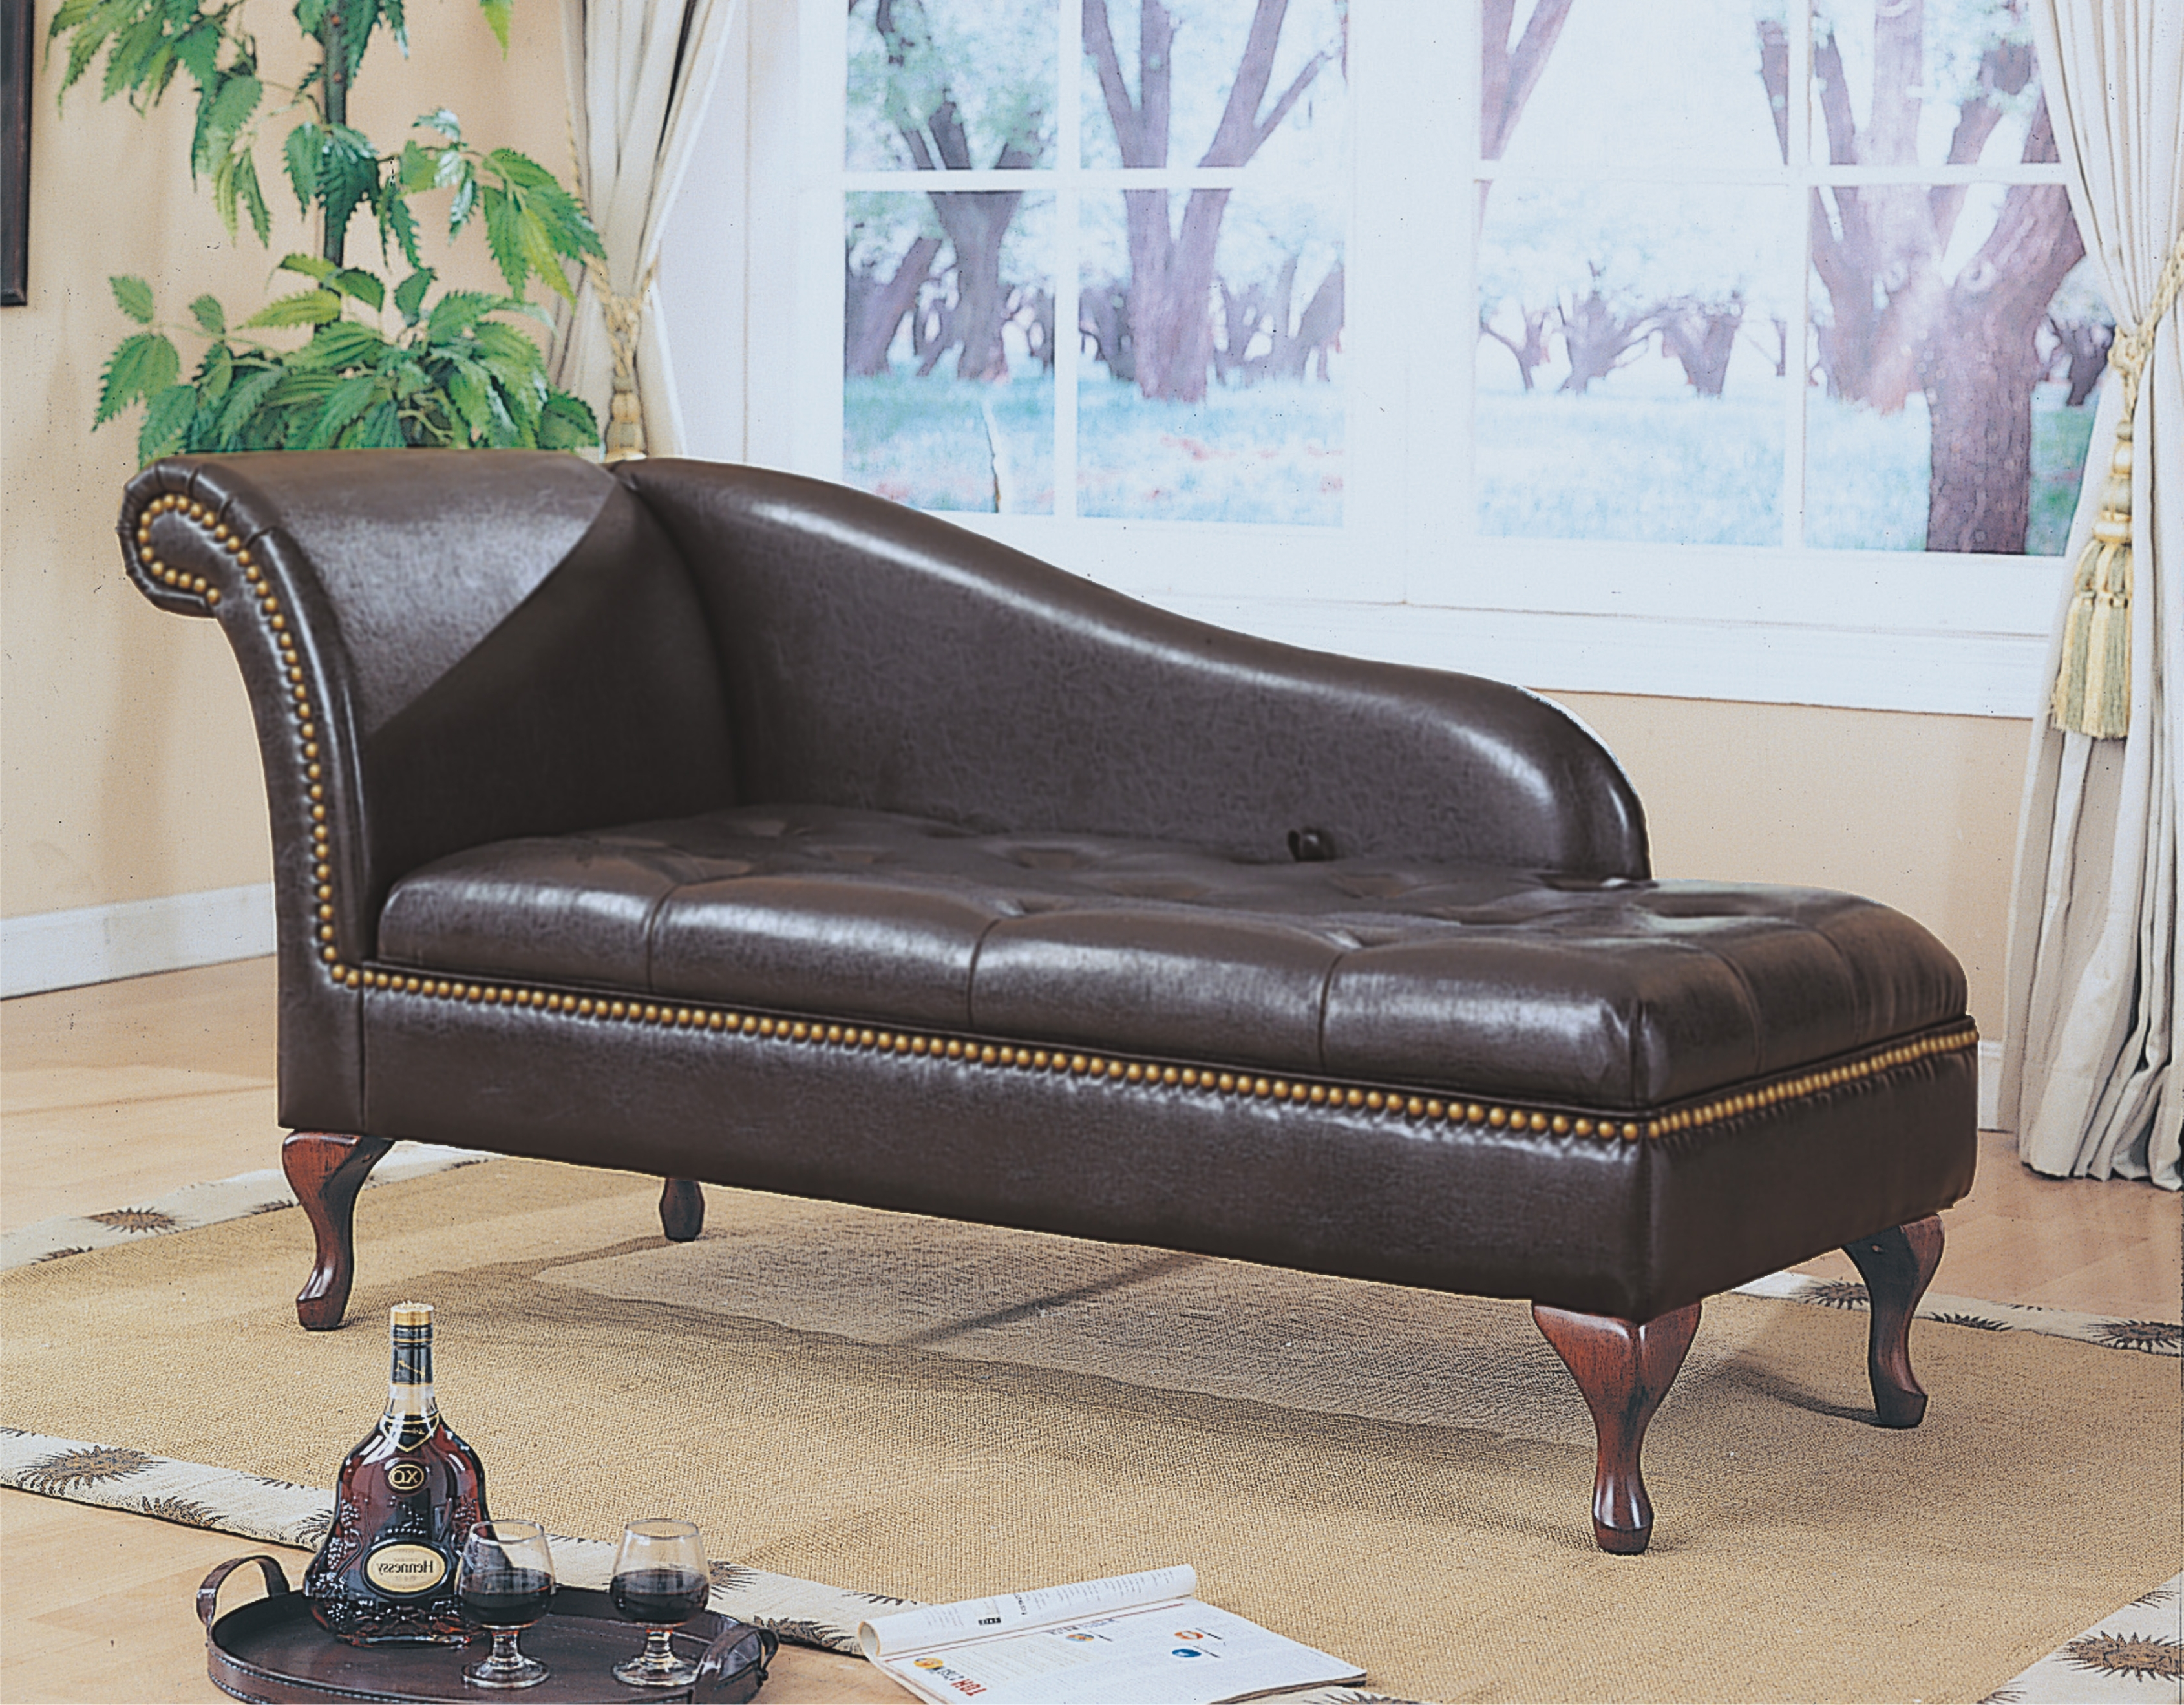 Newest Furniture: Alluring Leather Chaise With Unique Design — Agisee With Regard To Black Leather Chaise Lounge Chairs (View 13 of 15)